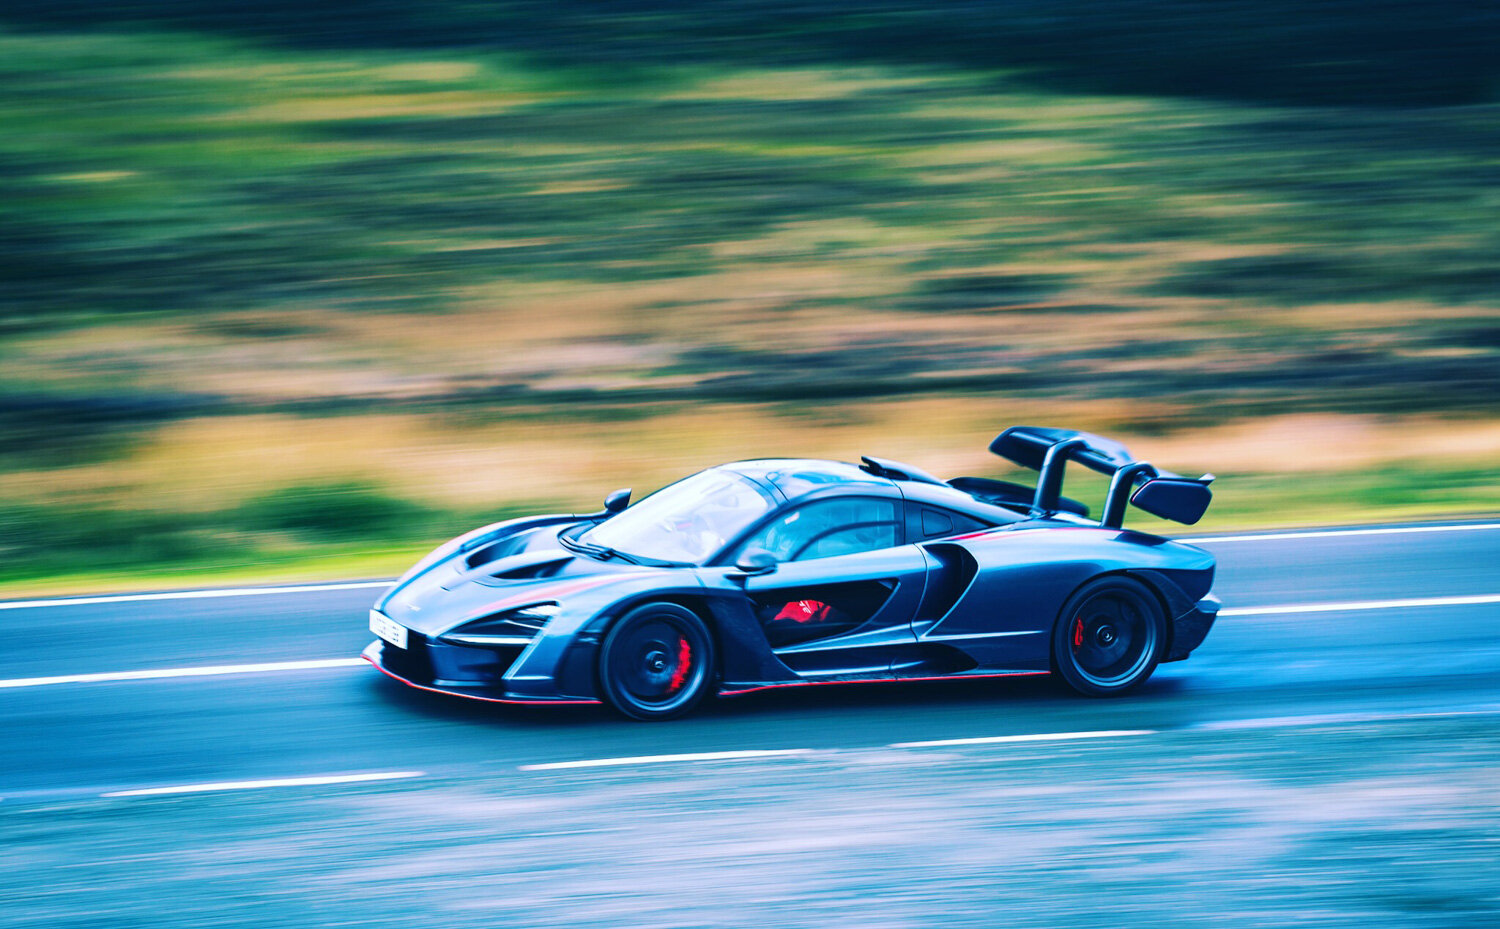 drone_filming_aerial_imagery_north_wales_drone_club_gt_mclaren_senna-6.jpg